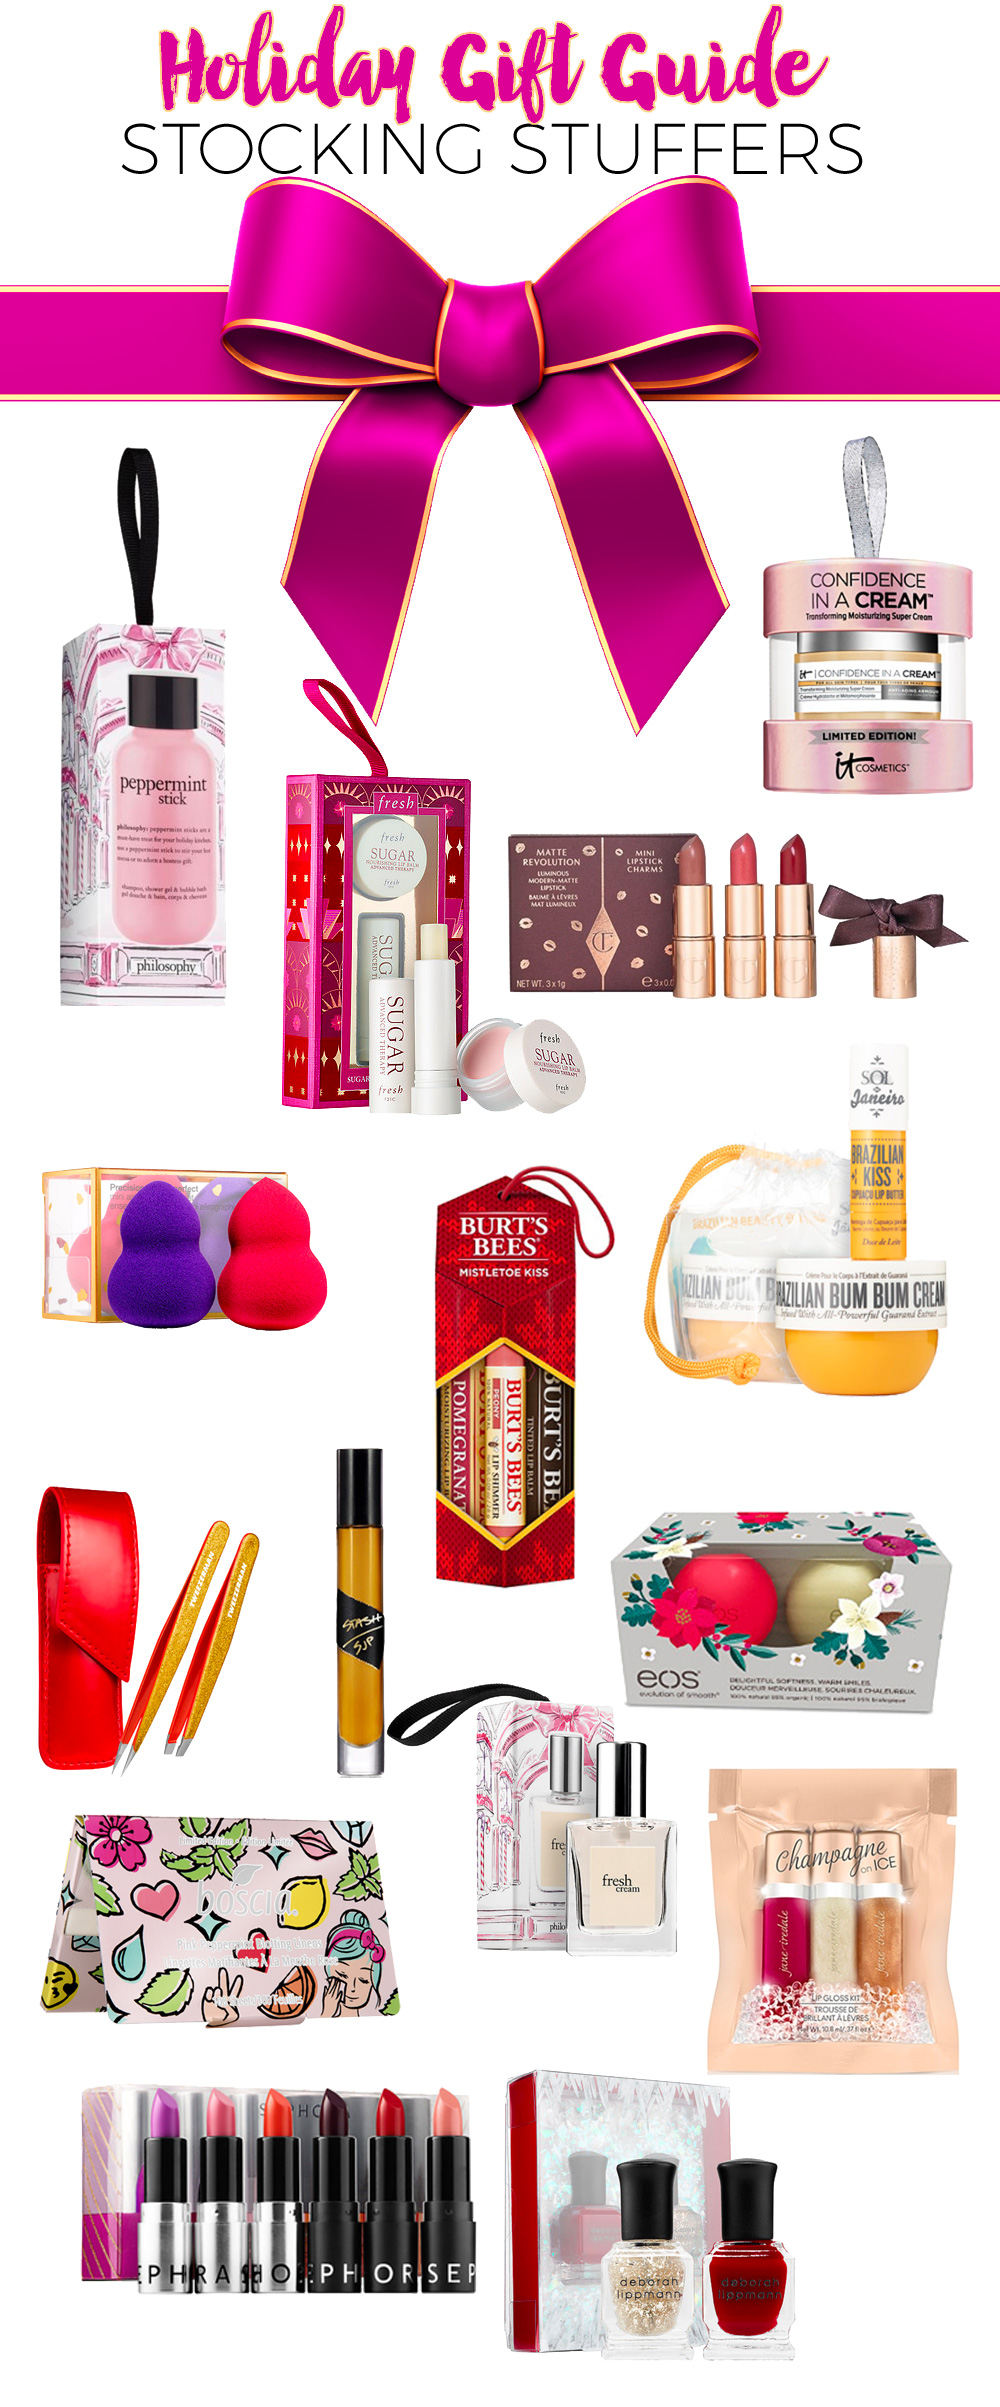 Holiday Gift Guide 2016: Stocking Stuffers